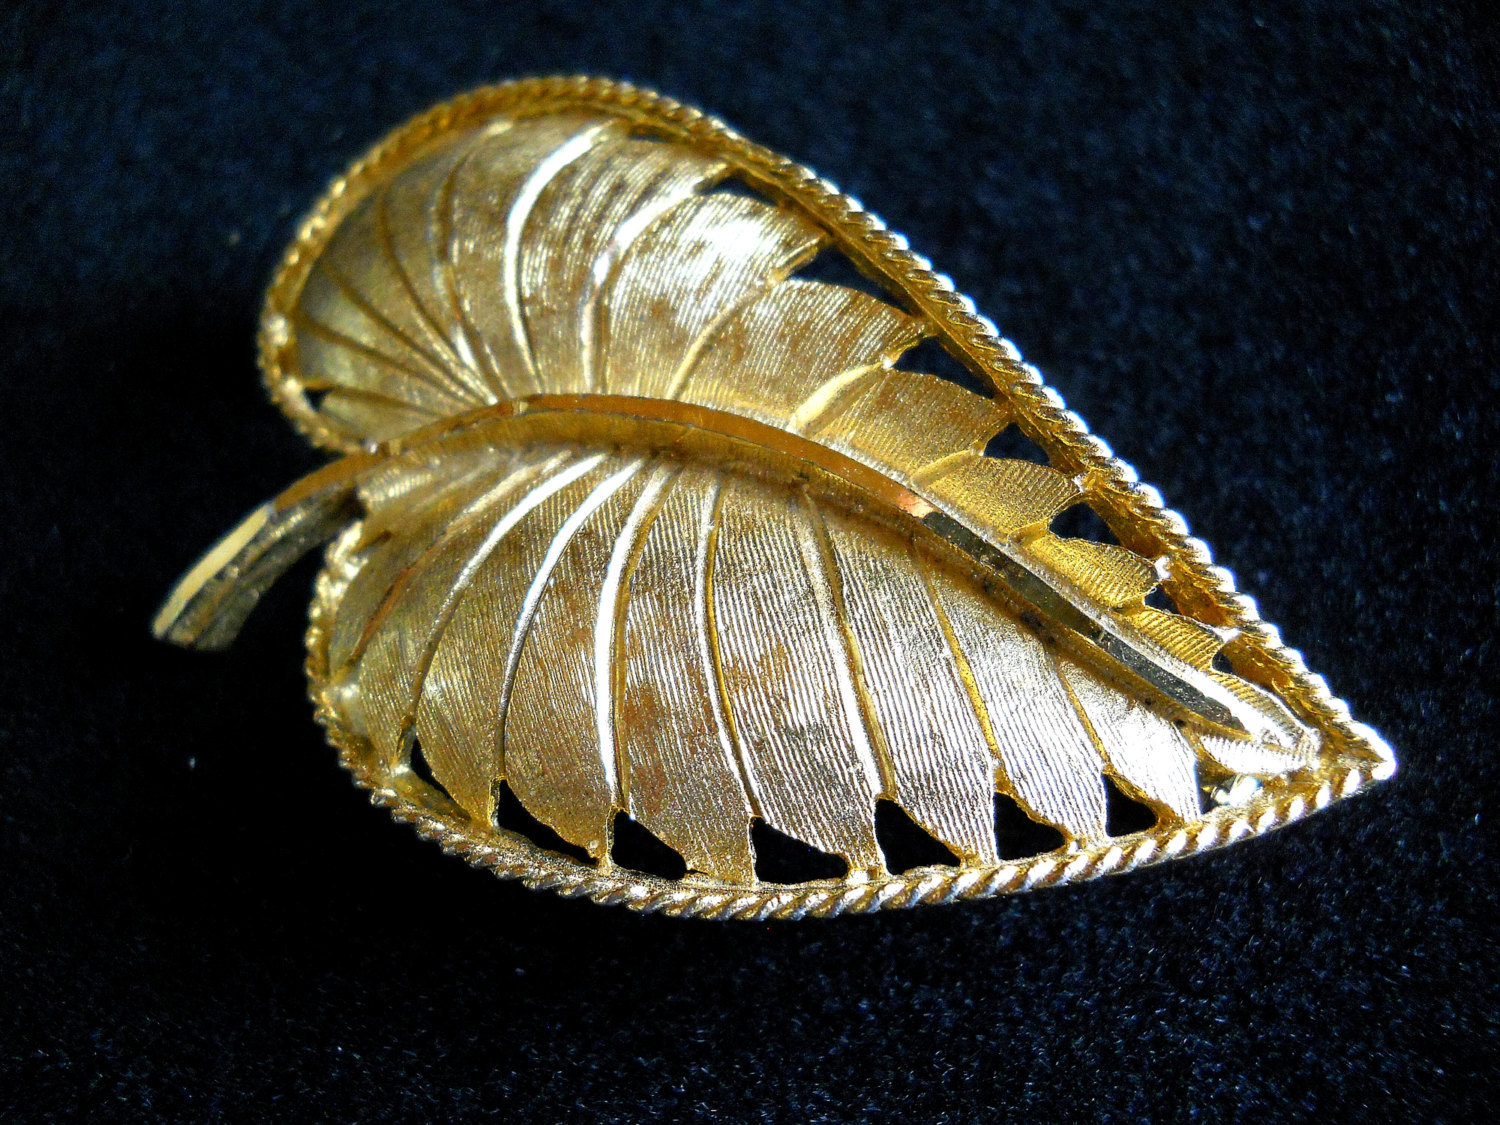 Signed BSK Textured Gold Tone Leaf Brooch Pin Vintage